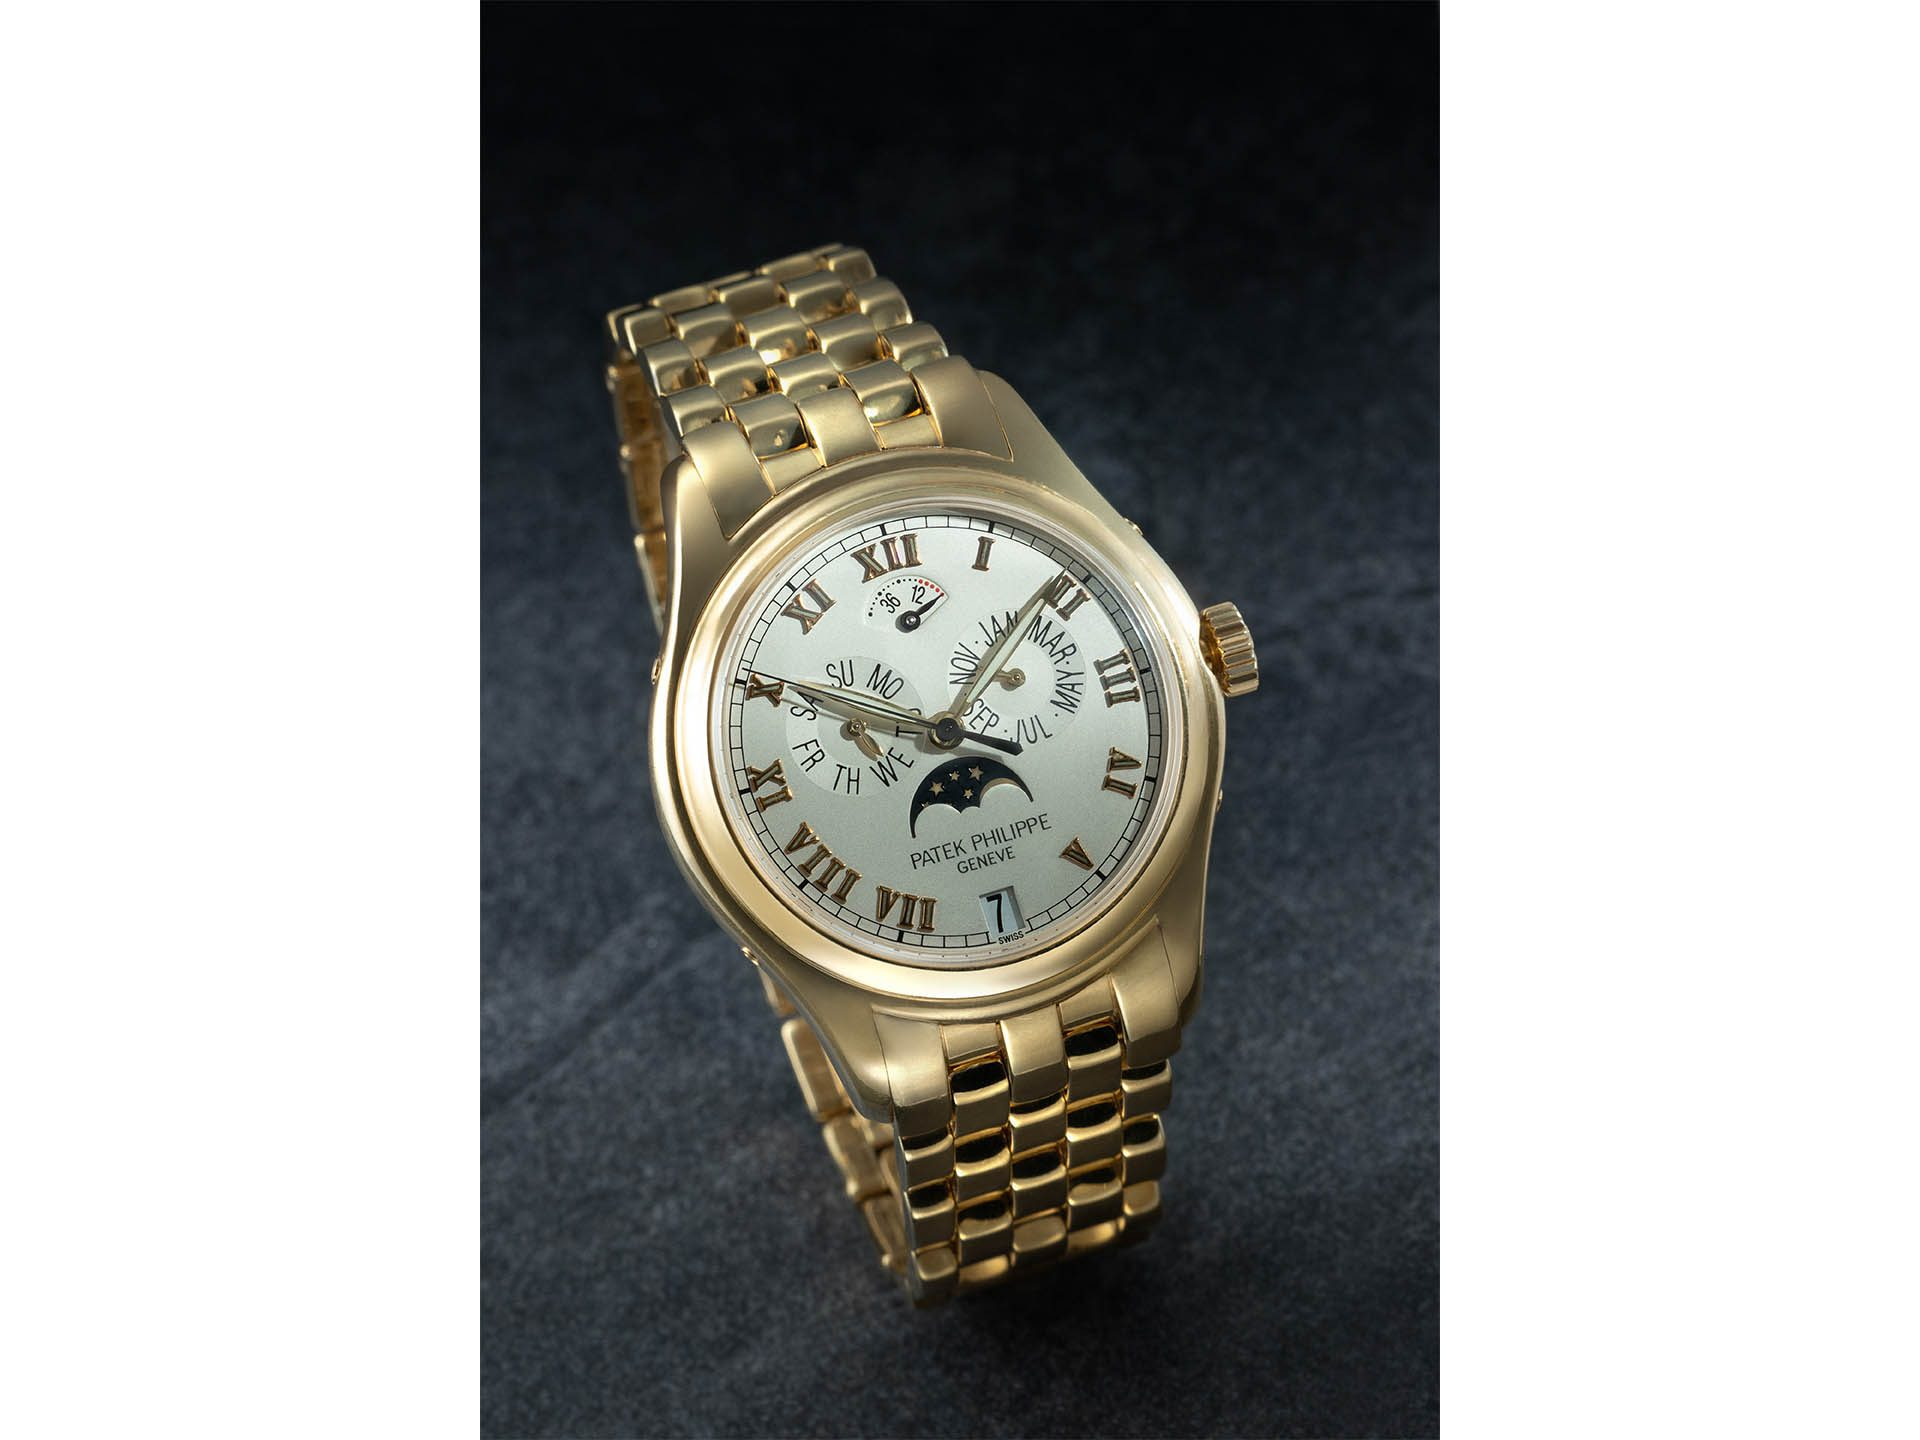 Patek Philippe, 18k Yellow Gold Ref. 5036/1j-001 Annual Calendar With Moon Phase Wristwatch.